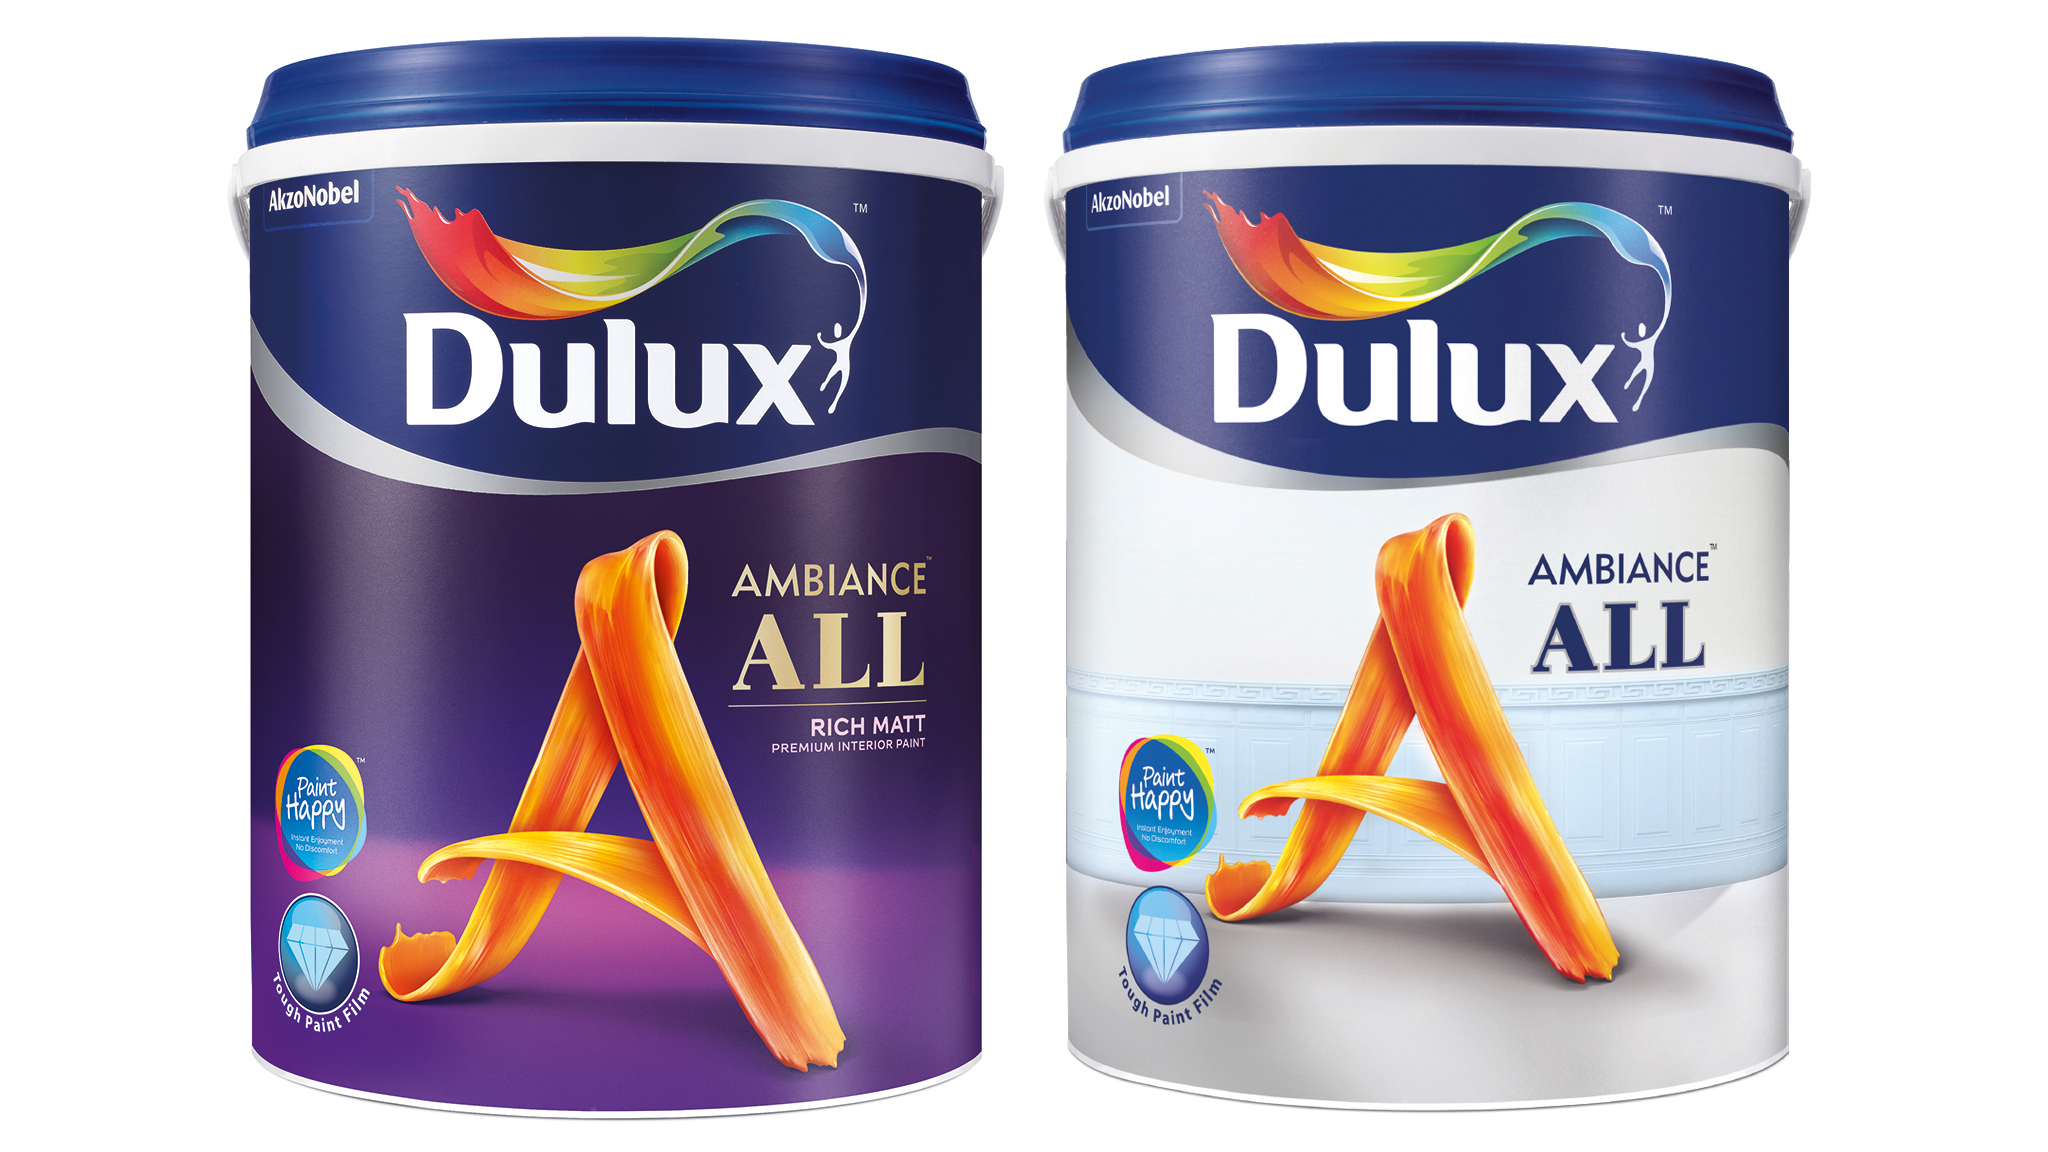 Dulux Ambiance All Dual Packshot